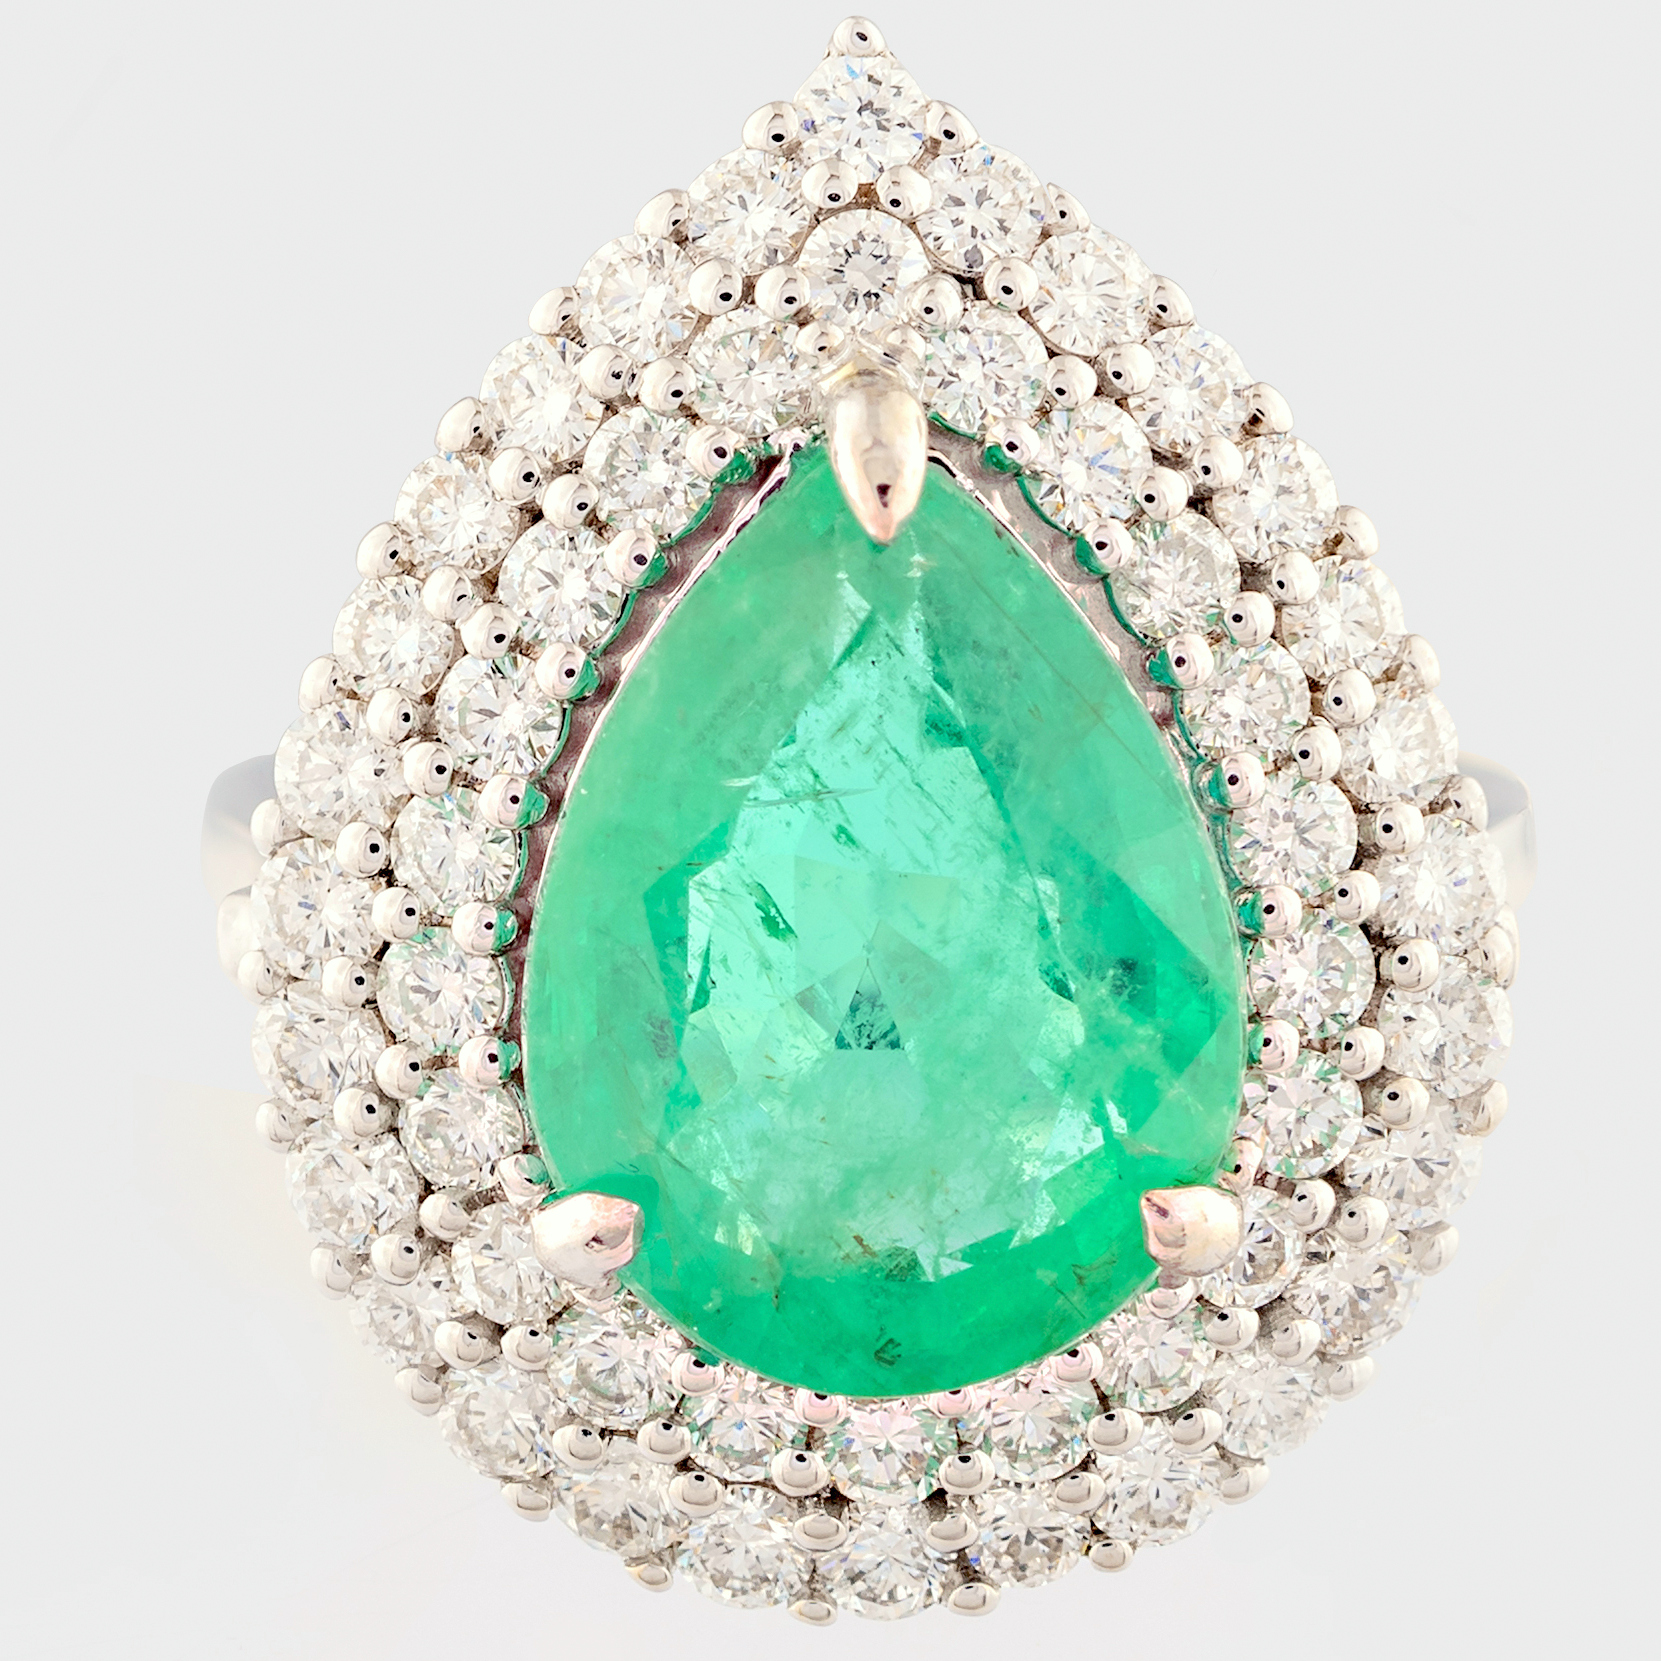 14K White Gold Cluster Ring 4,70 Ct. Natural Emerald - 1,40 Ct. Diamond - Image 2 of 4